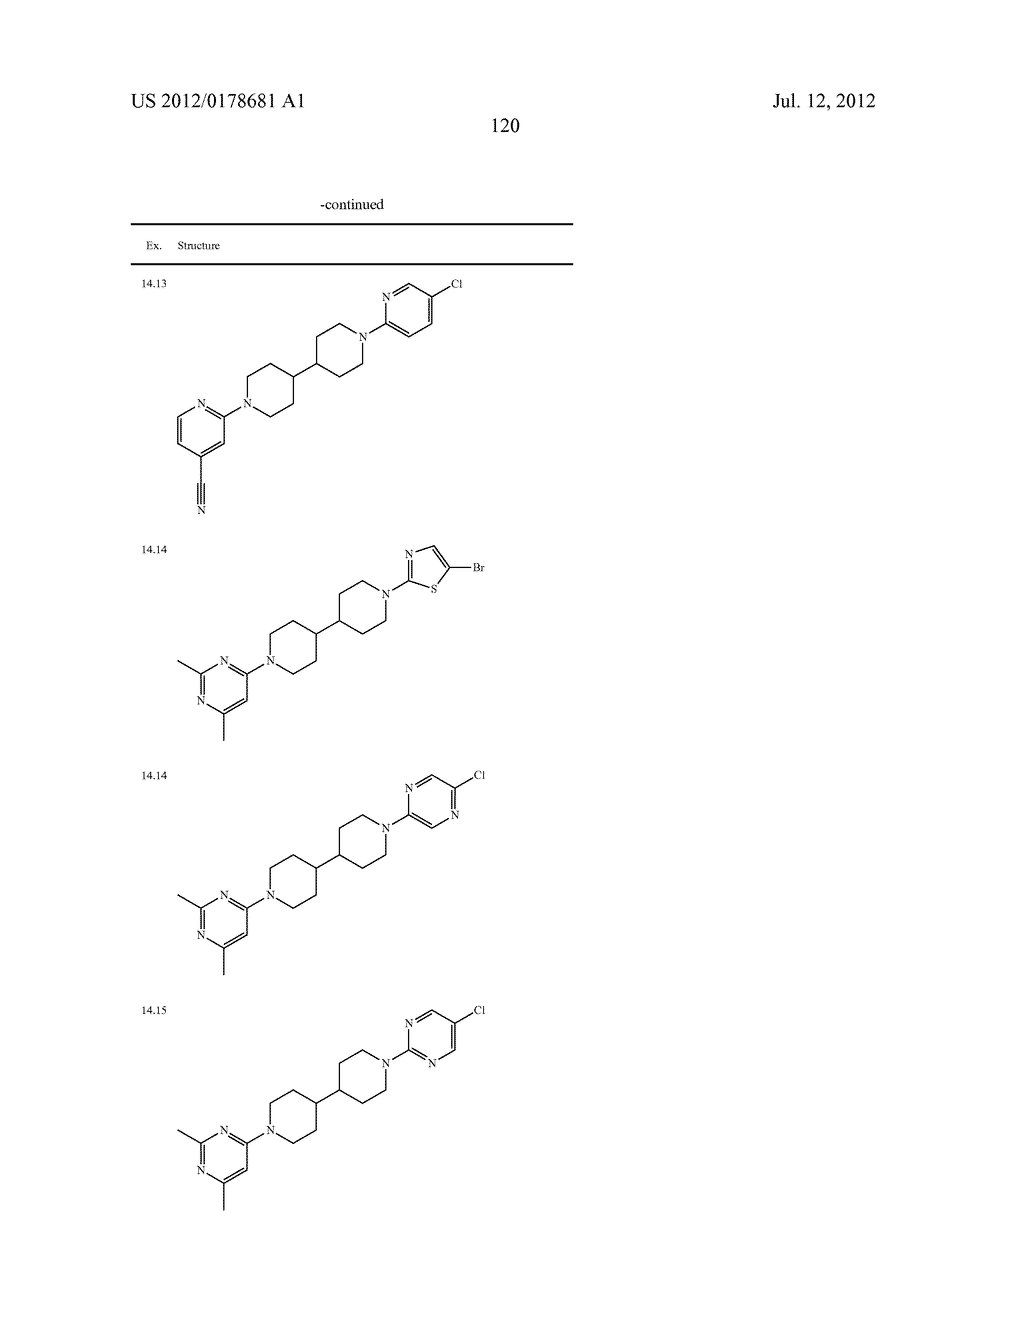 BIPIPERIDINYL COMPOUNDS, COMPOSITIONS, CONTAINING SUCH COMPOUNDS AND     METHODS OF TREATMENT - diagram, schematic, and image 121